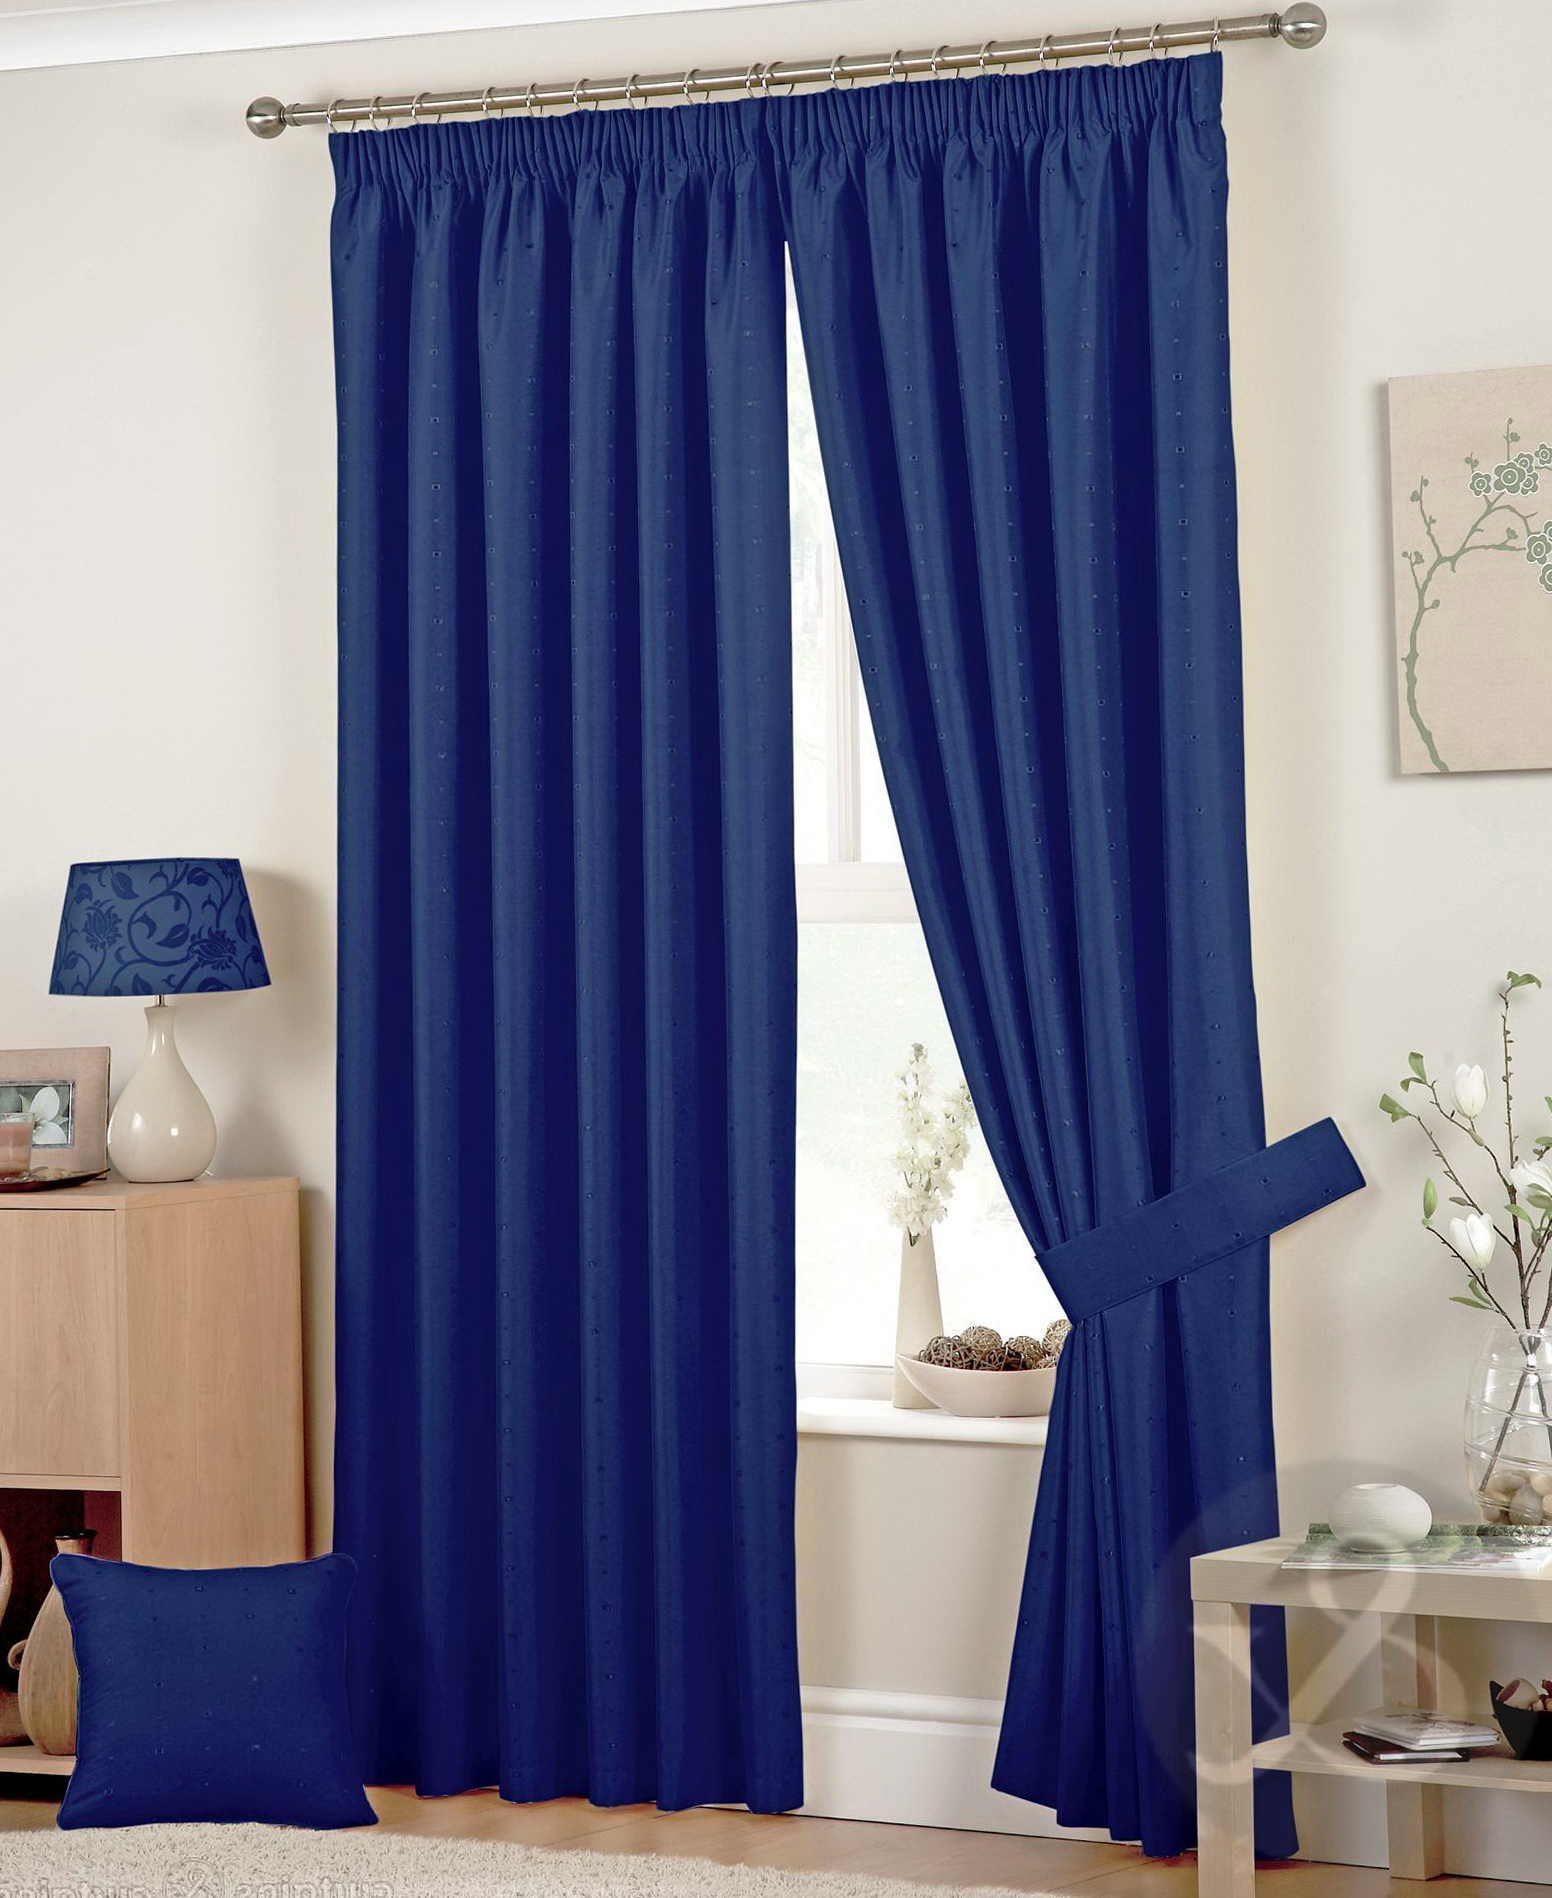 Blue Curtains For Boys Room Home Design Ideas